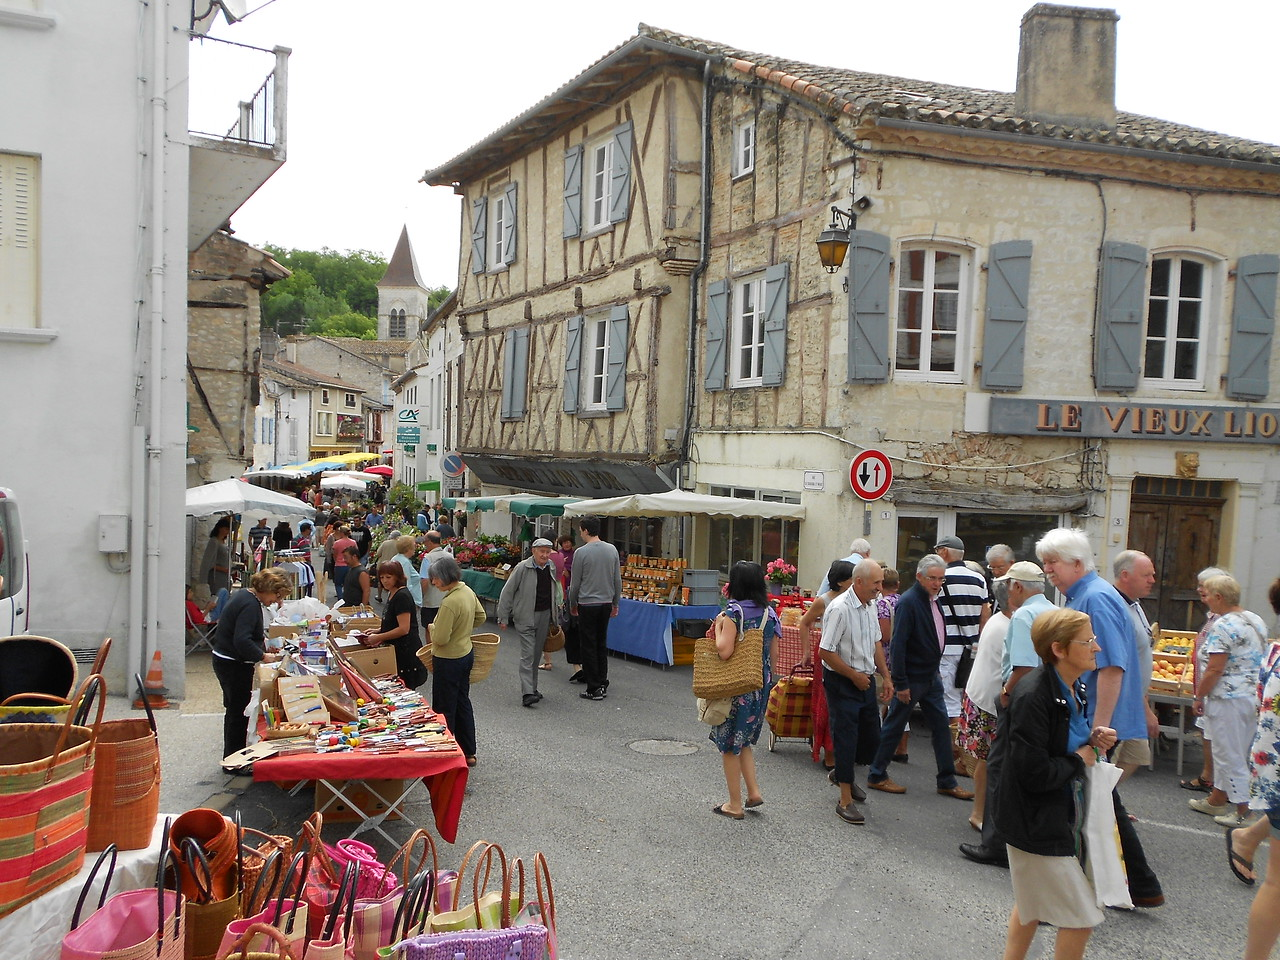 Market day in Montcuq, another town about 15 minutes up the road.  Lots of tourists during the summer.